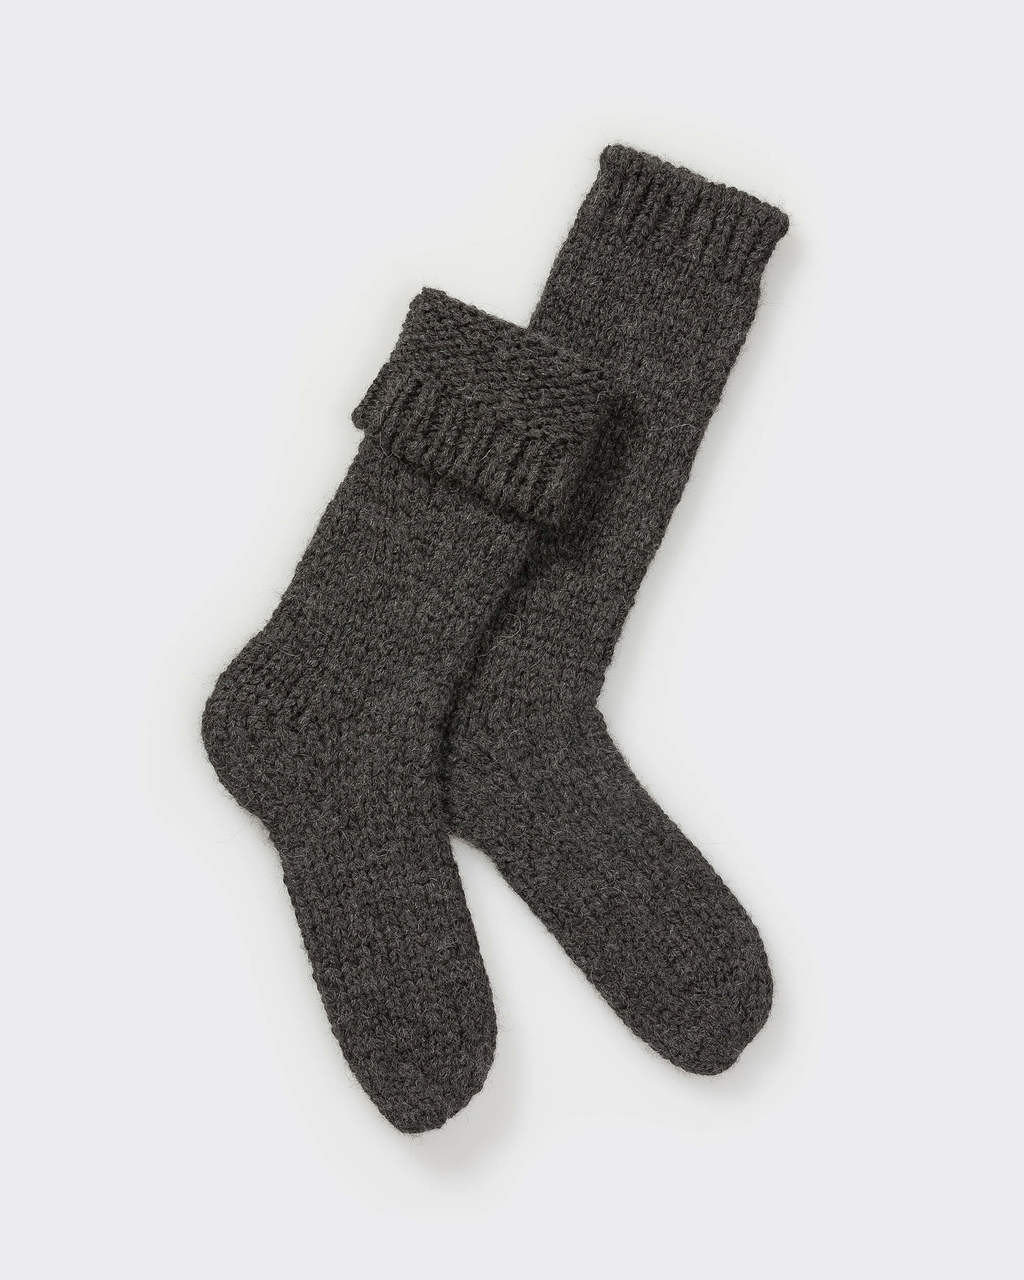 Alicia Adams Alpaca Lounge Sock, alpaca socks, womens alpaca socks, alpaca socks men, alpaca wool socks, charcoal alpaca socks